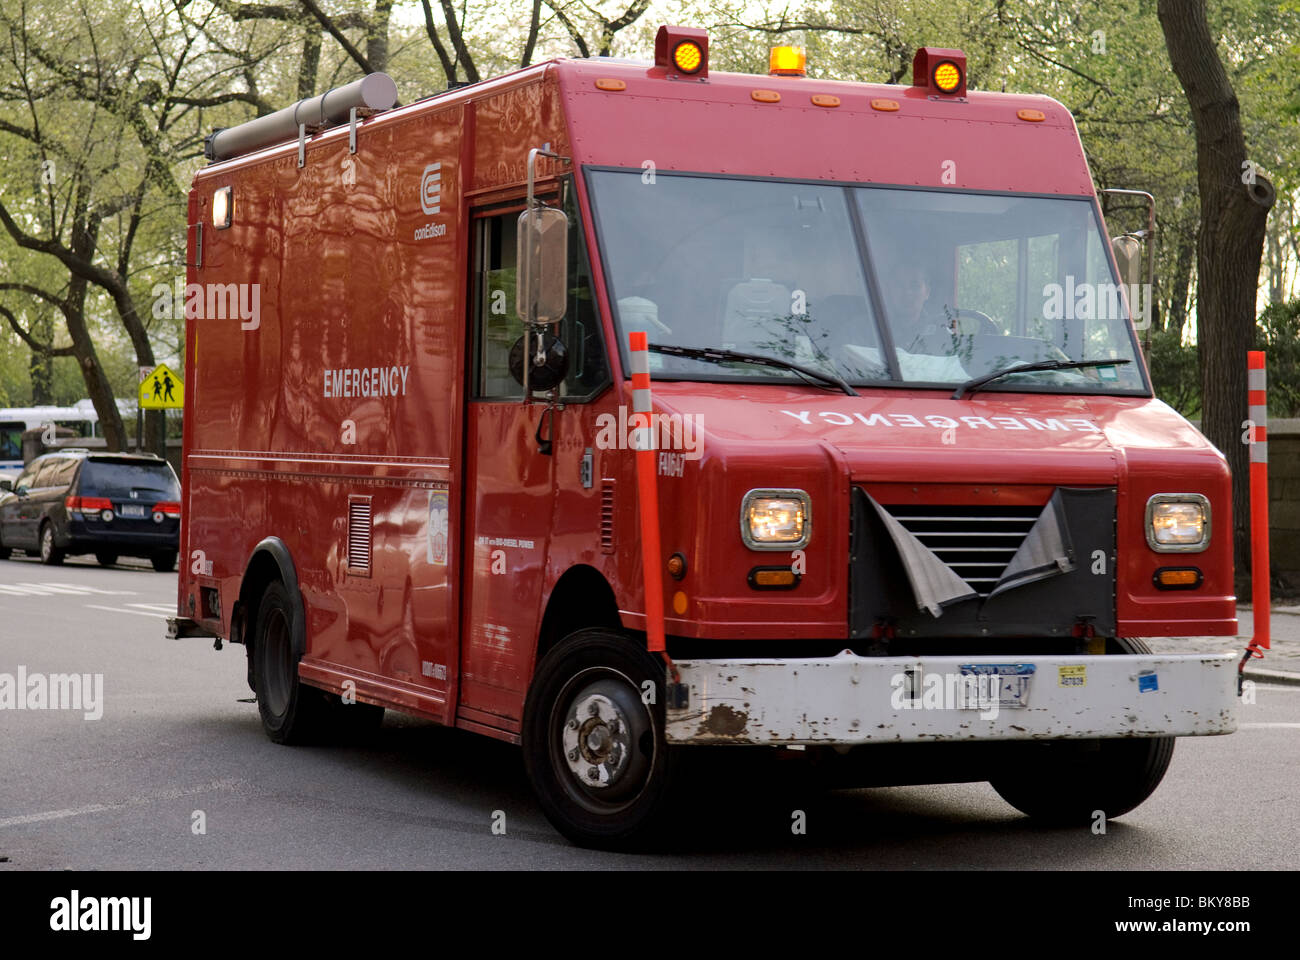 Con Edison truck performing emergency maintenance work on 5th Avenue, New York City - Stock Image